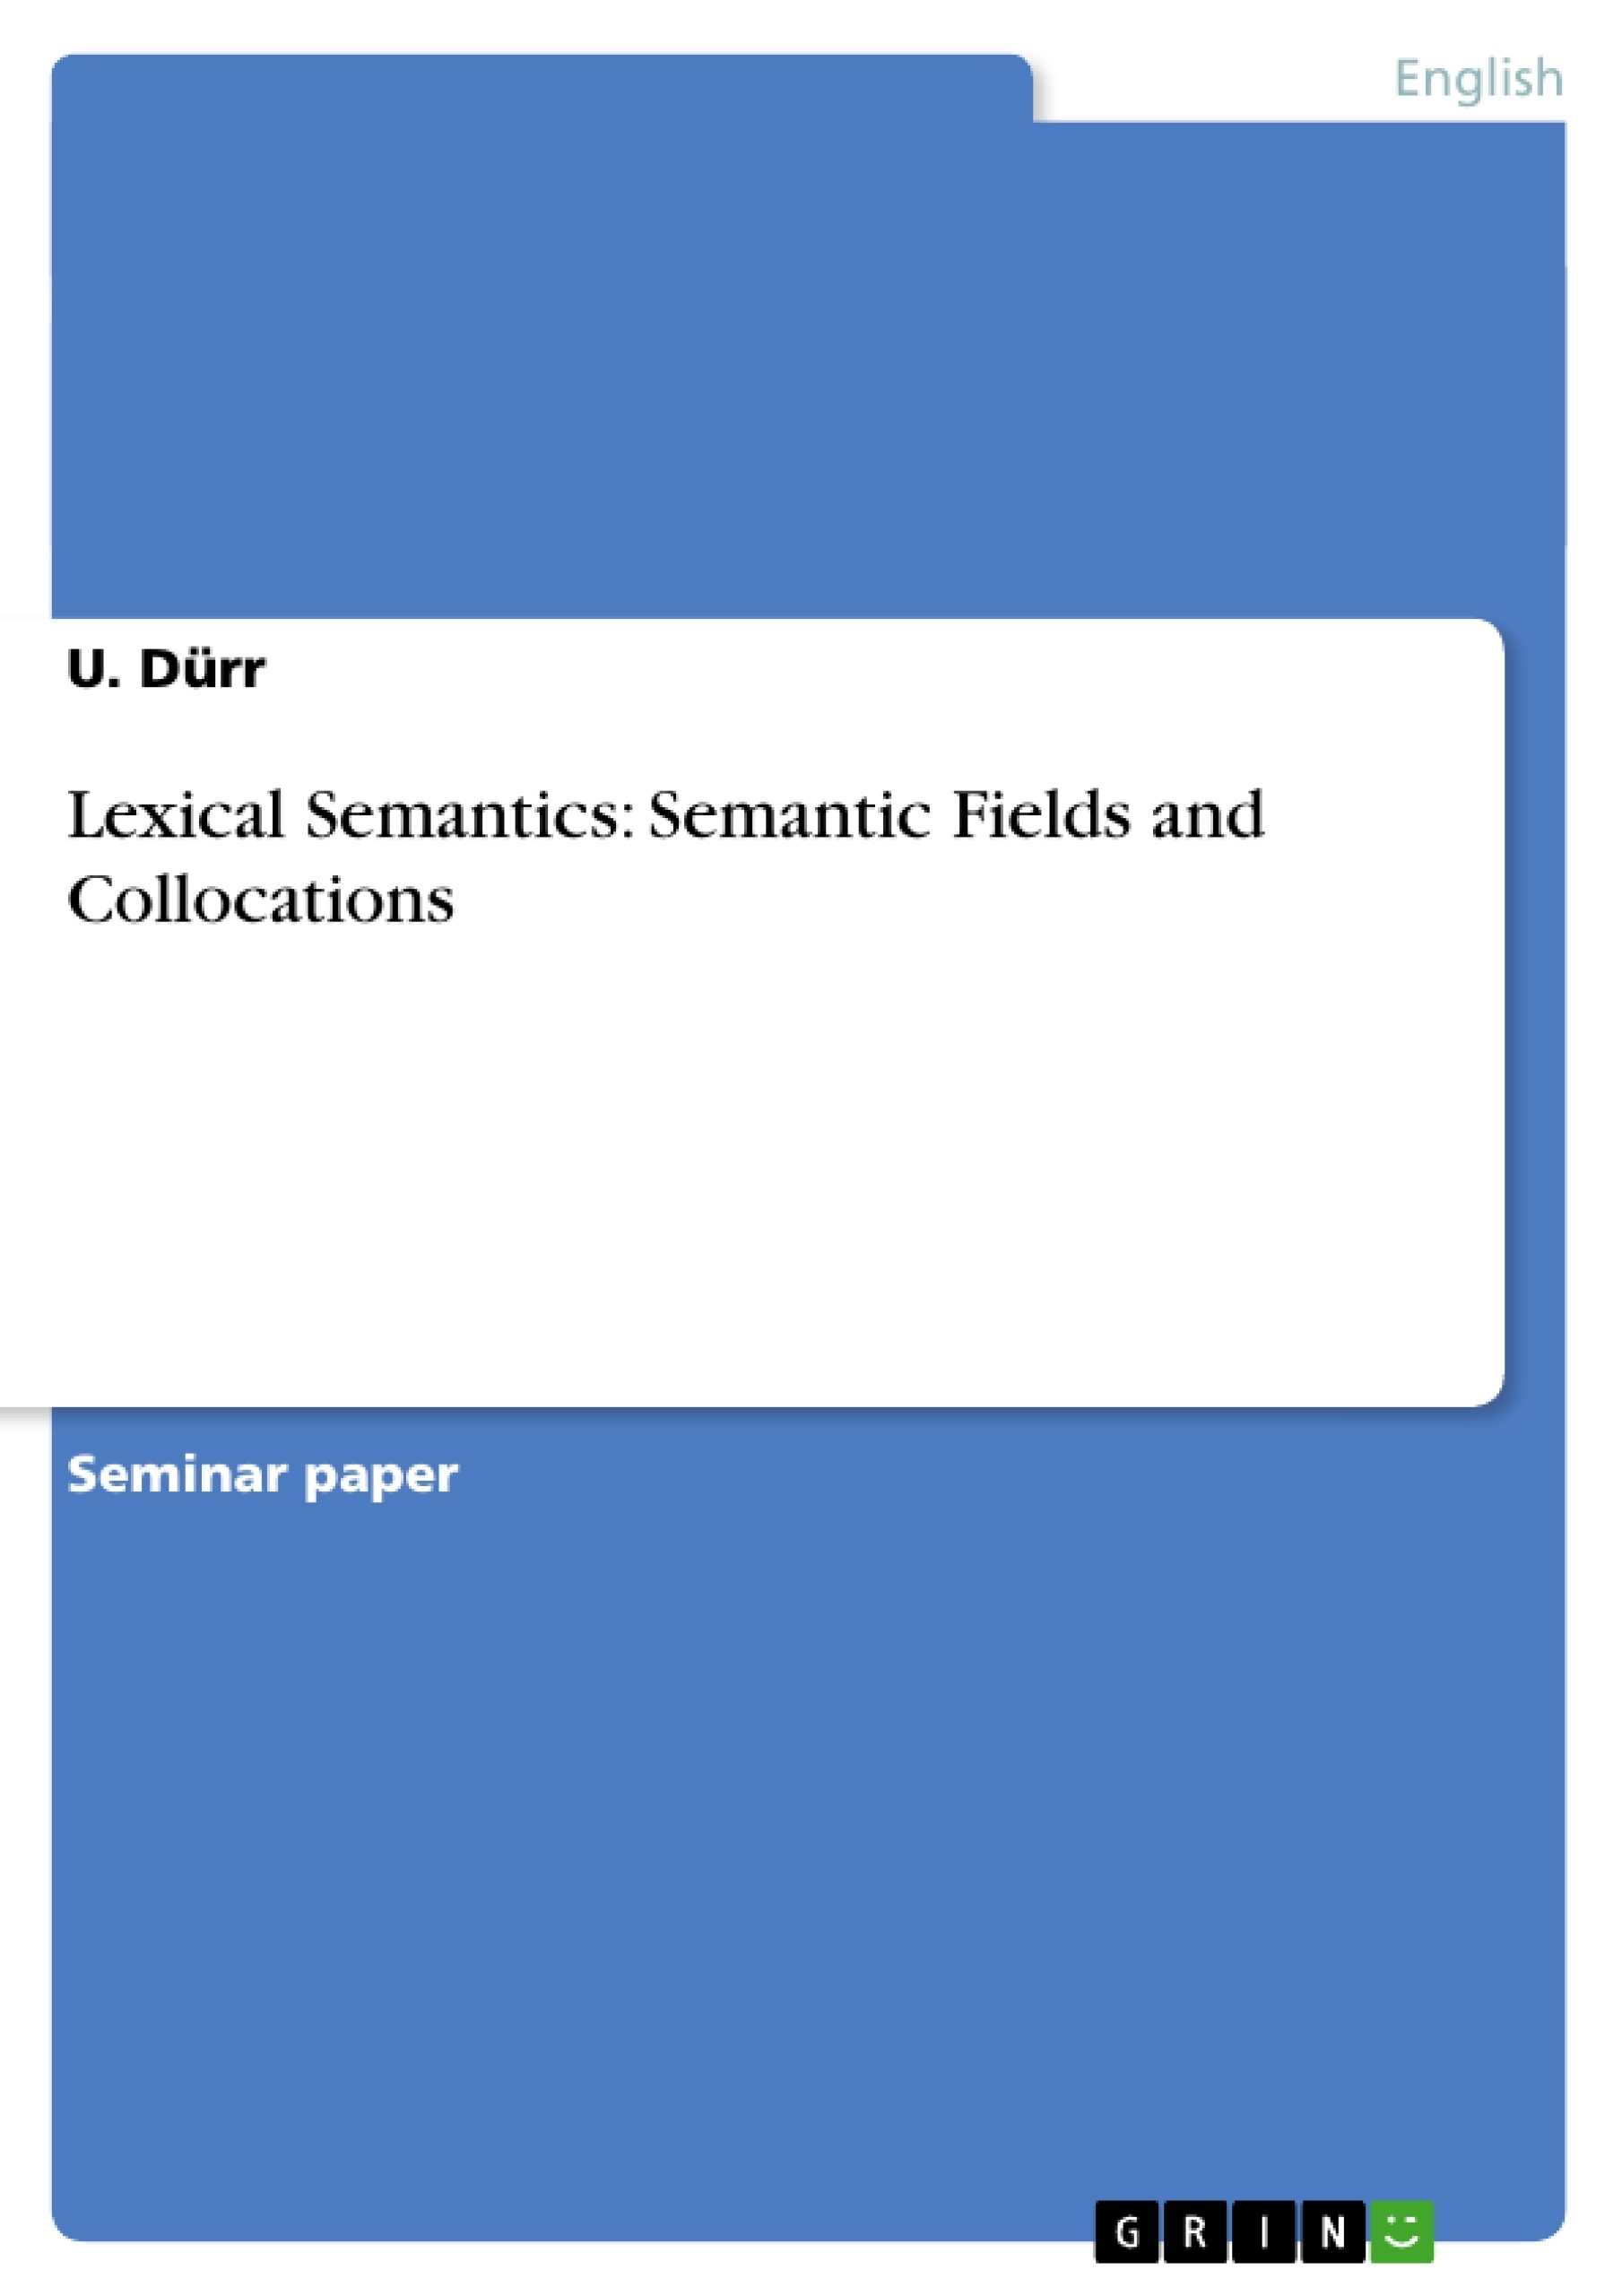 Title: Lexical Semantics: Semantic Fields and Collocations